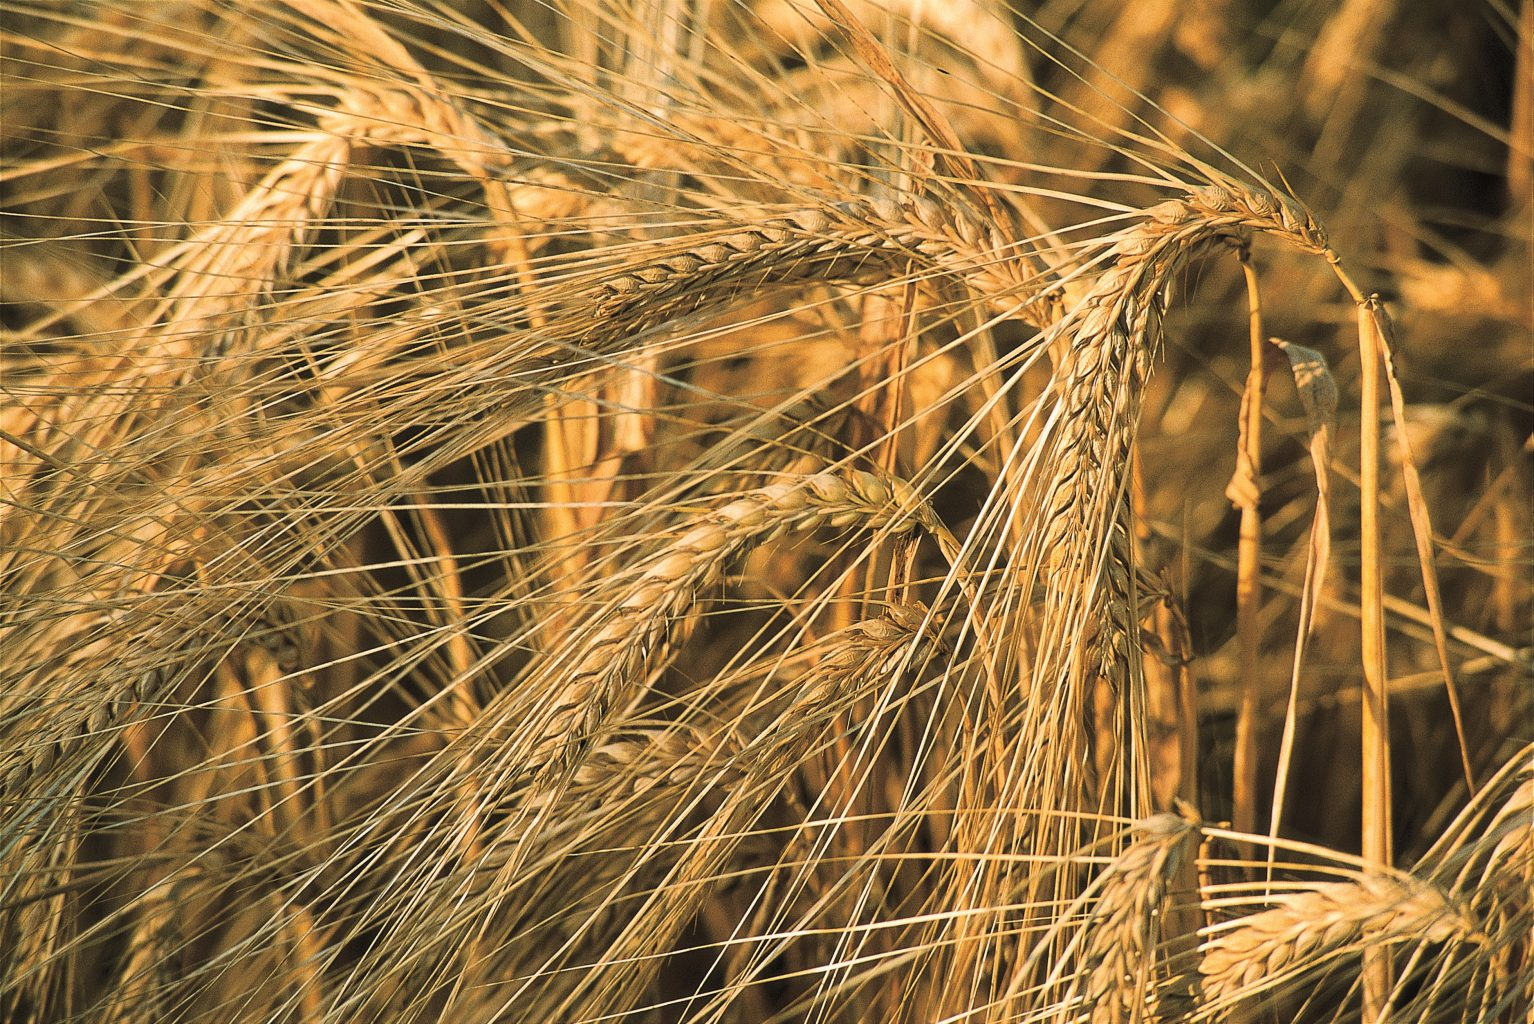 Grain varieties form different malts